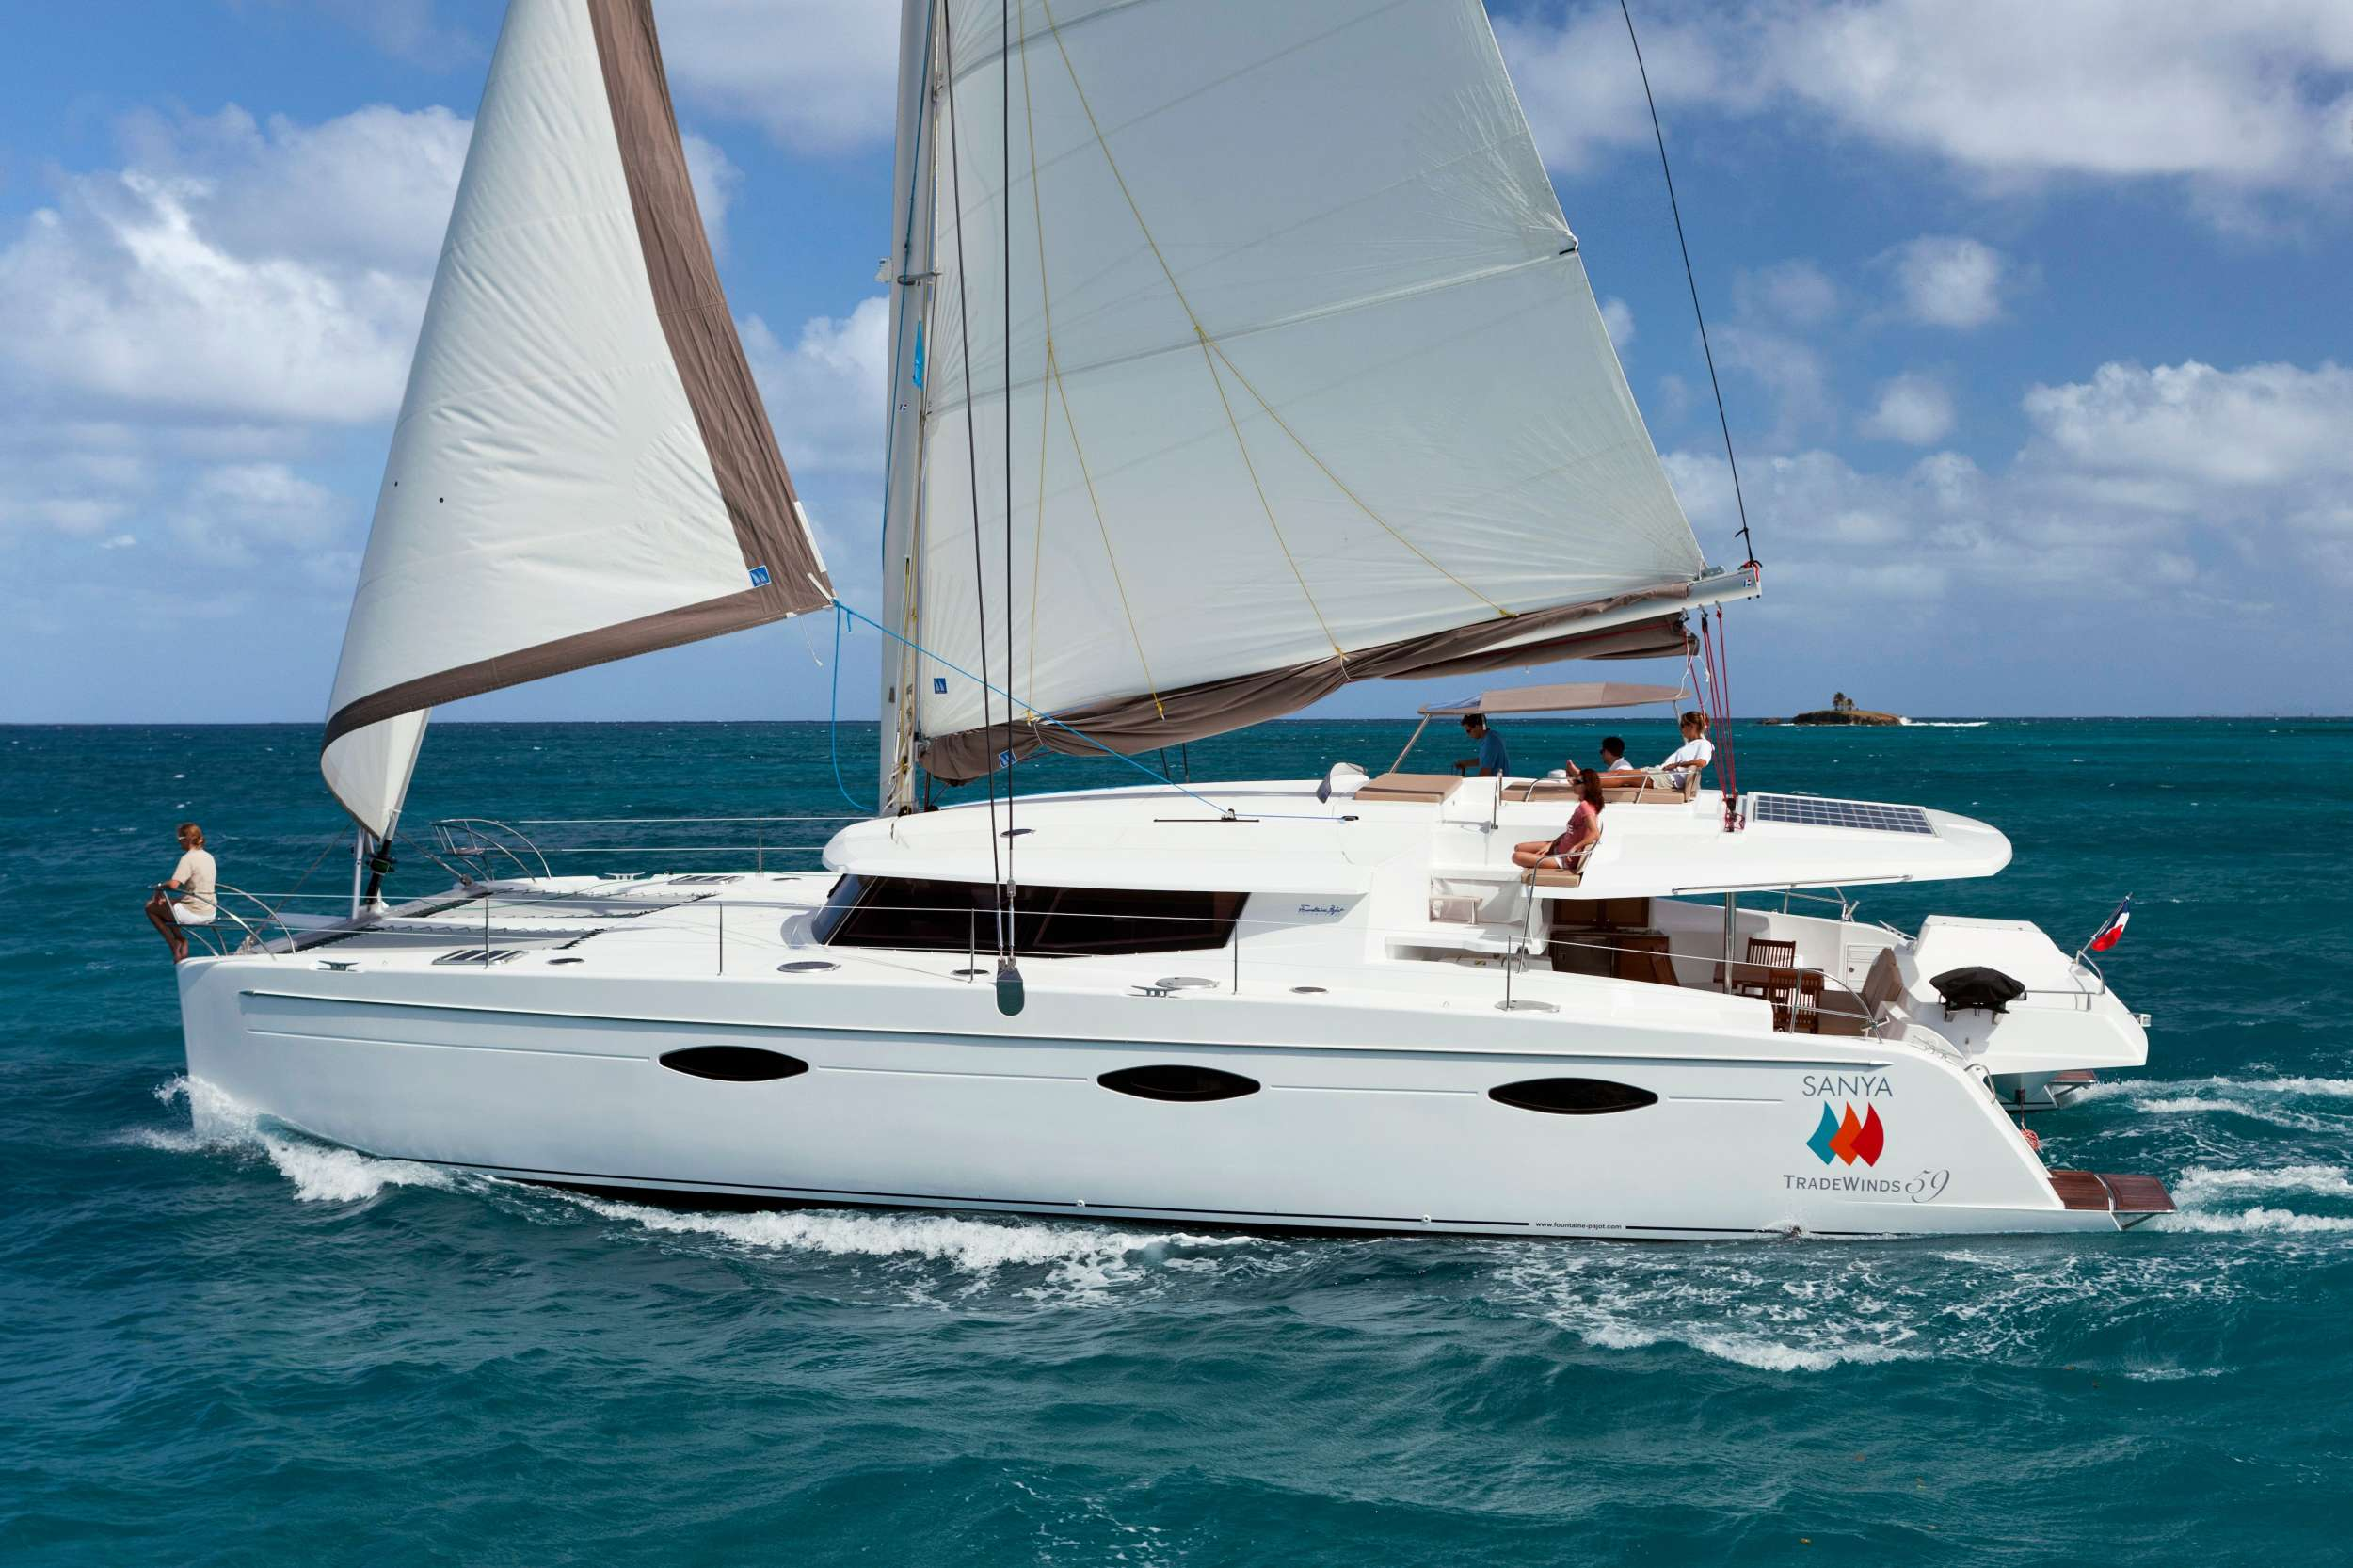 Charter with ALIVE on compassyachtcharters.com